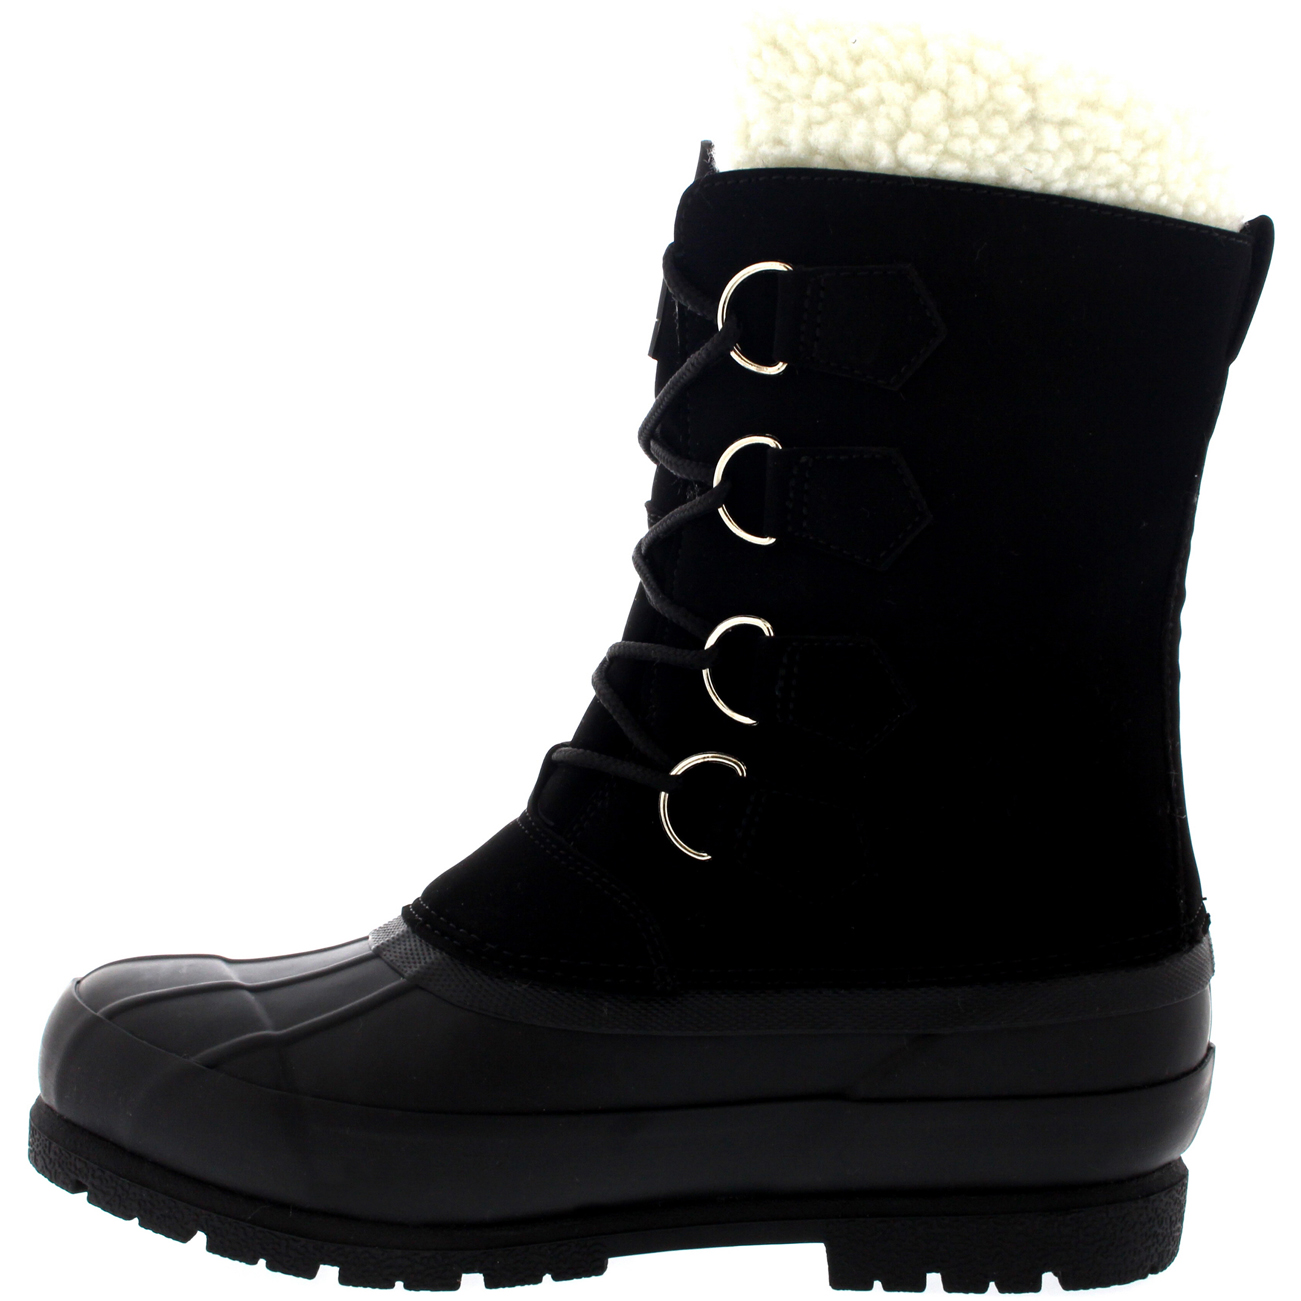 Mens Winter Wool Lined 100% Rubber Duck Sole Warm Casual